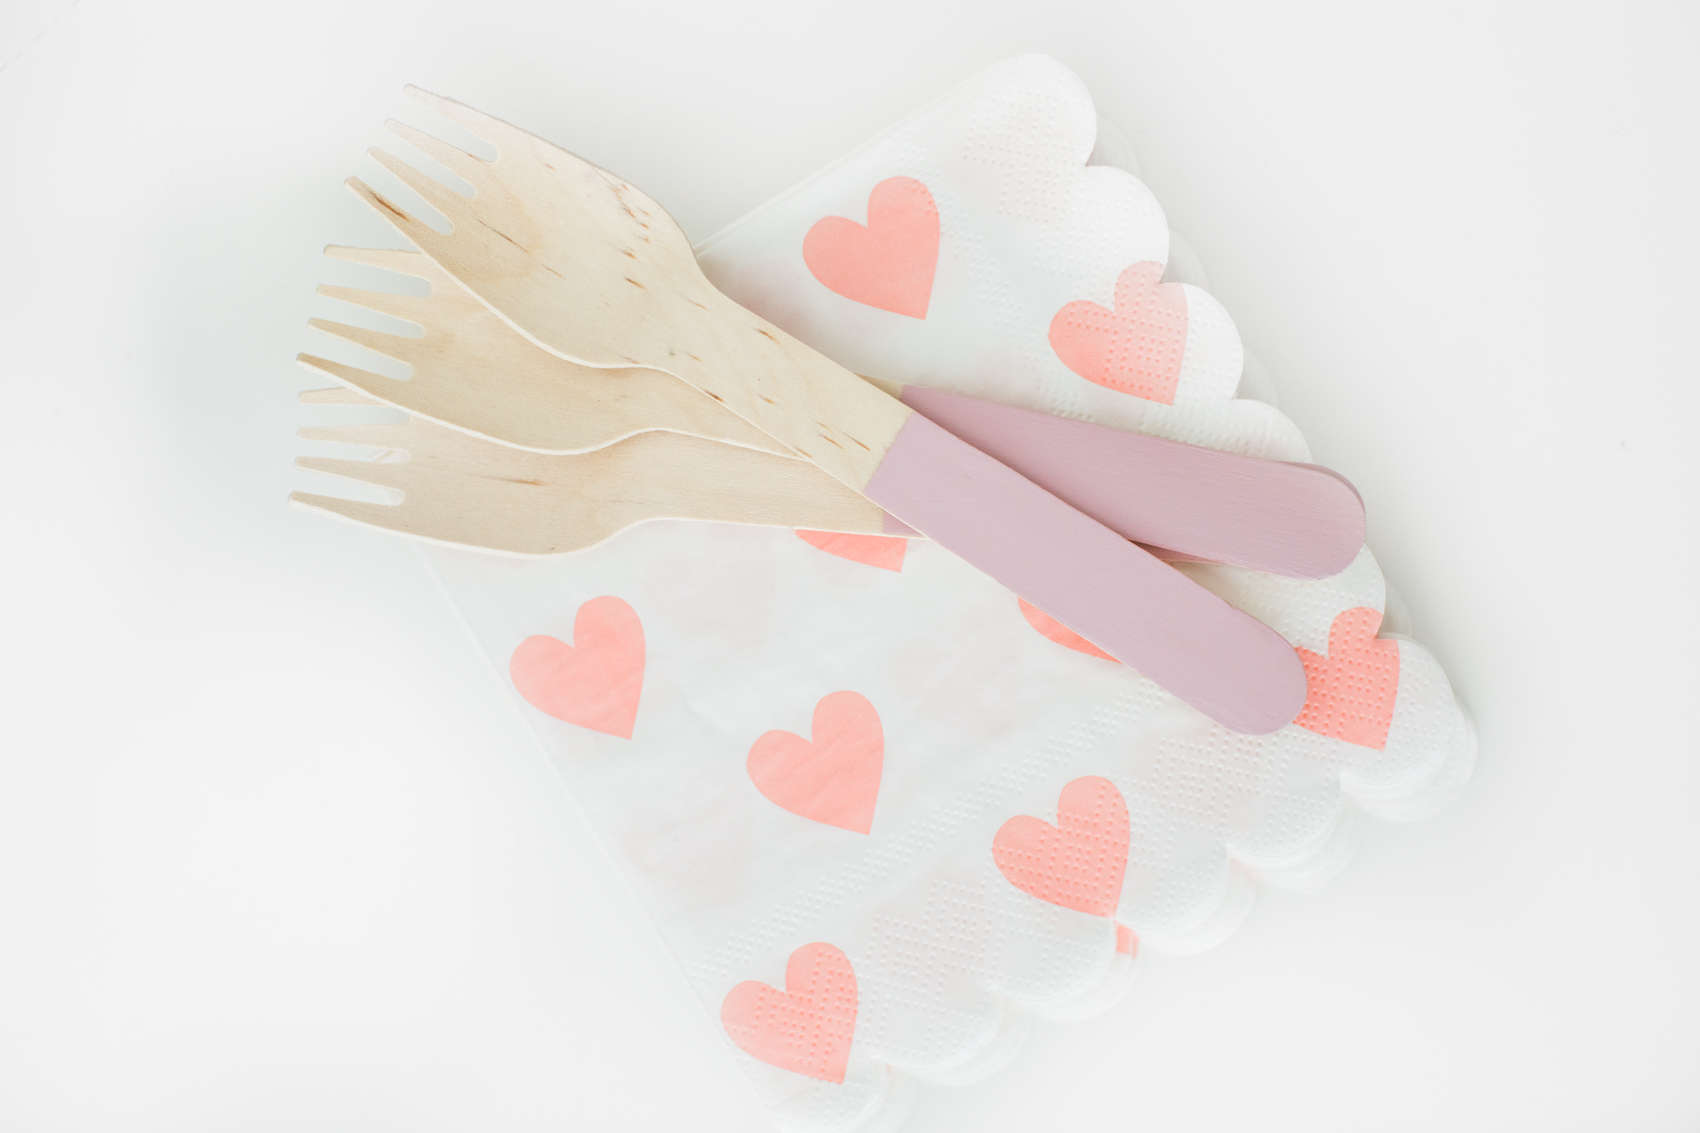 kids wood forks and heart napkins